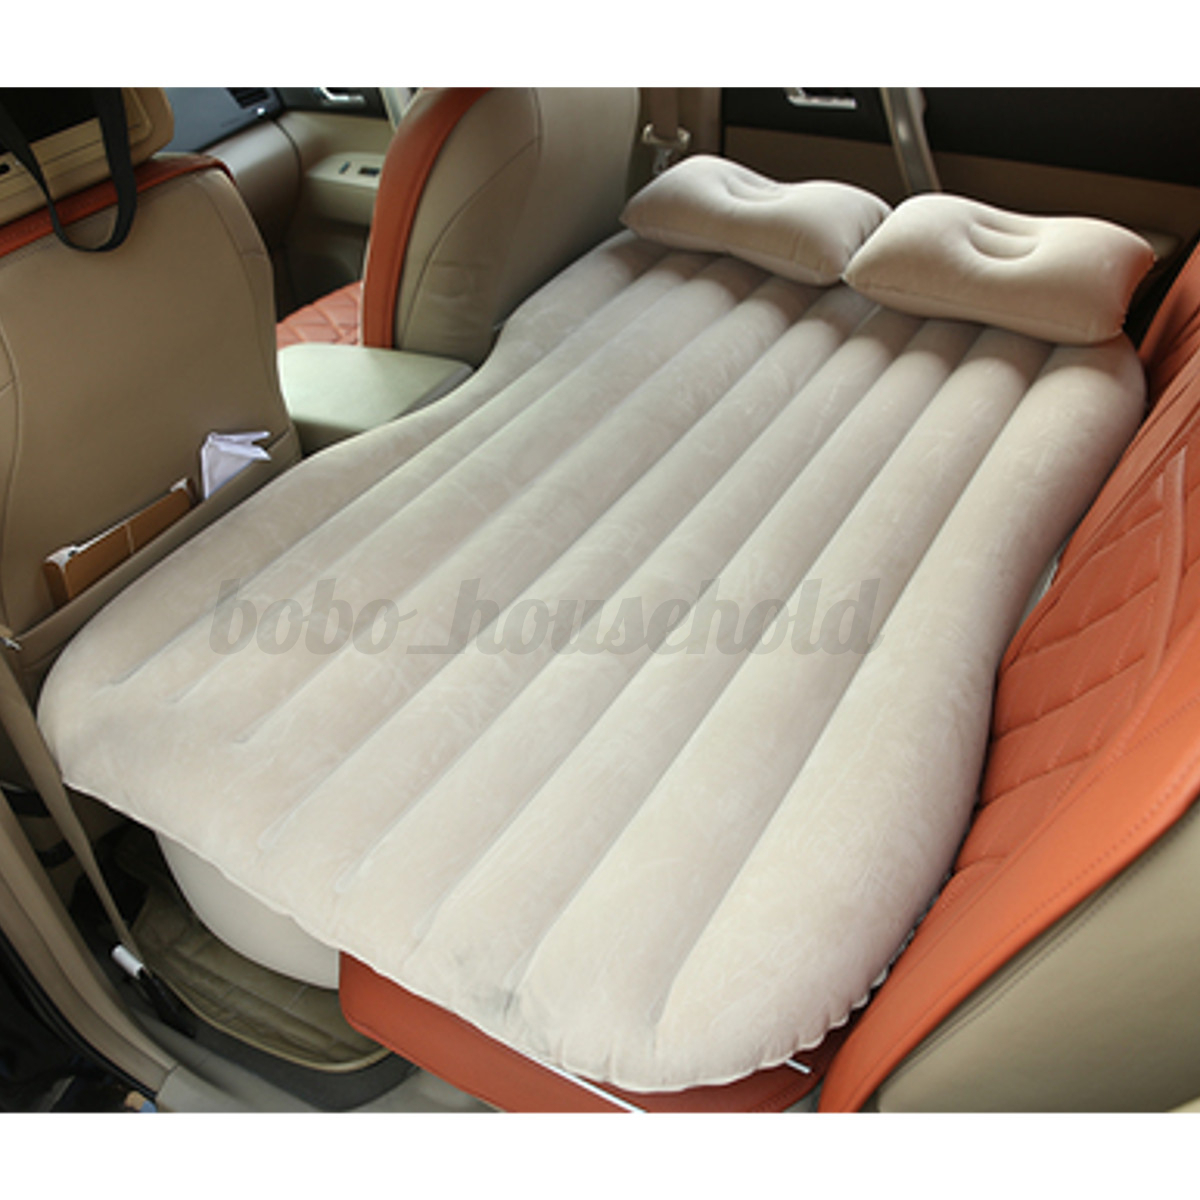 chair pillows for bed white bistro car air inflatable mattress back seat cushion two